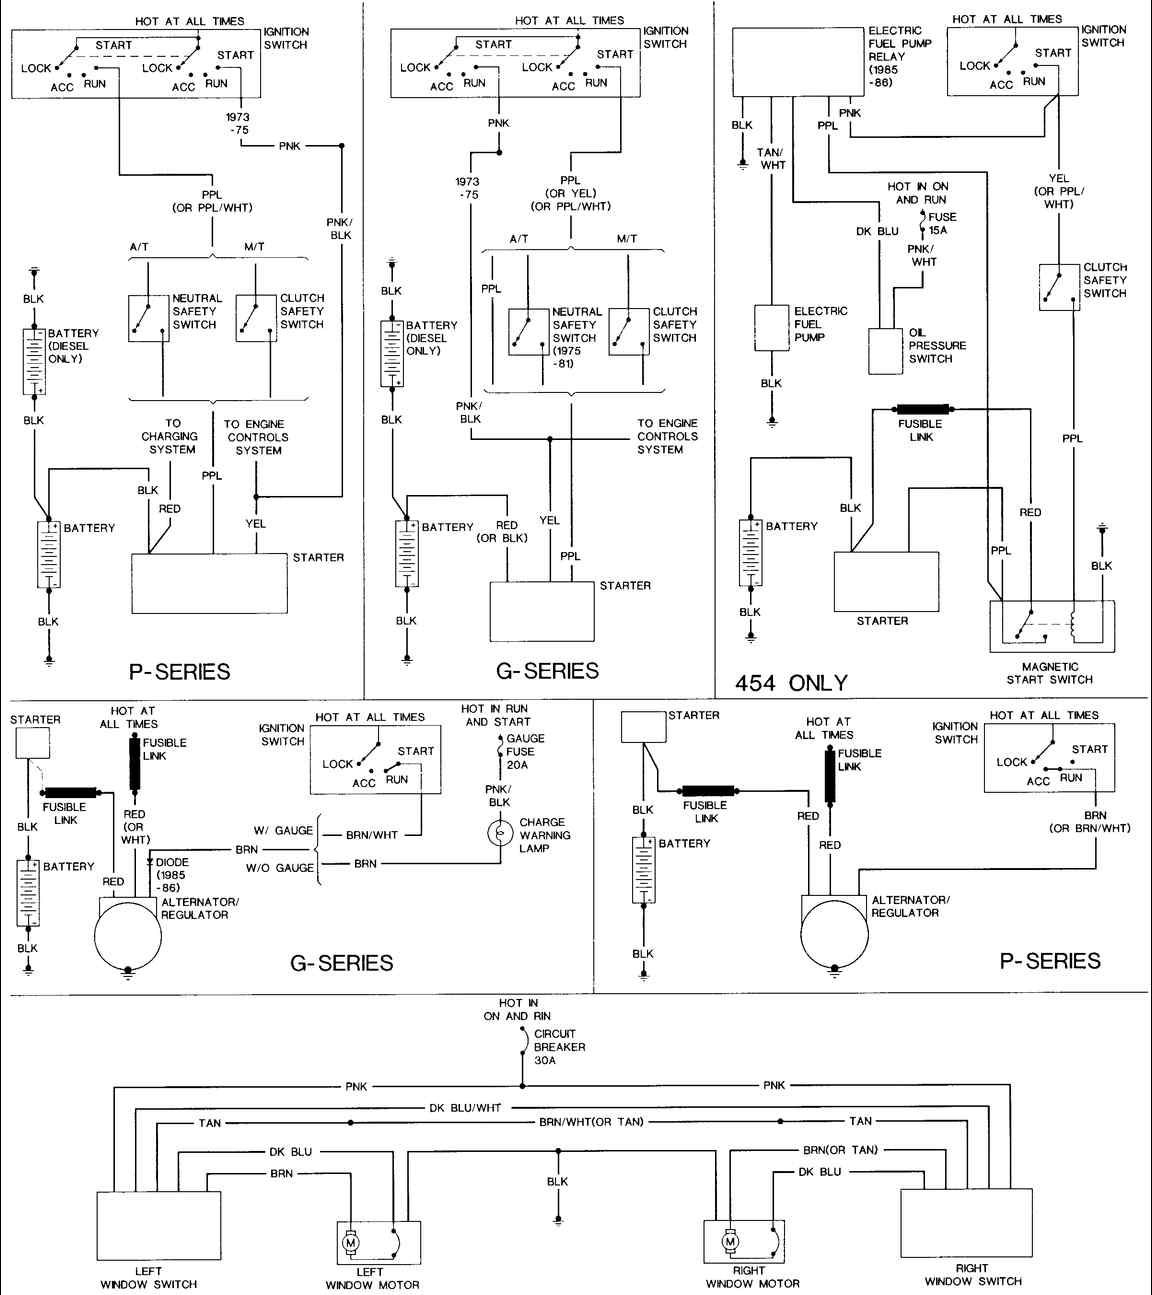 0c73623a181dc376dbb4777e2029d285 85 chevy truck wiring diagram 85 chevy van the steering column painless wiring harness for 85 chevy pickup at n-0.co